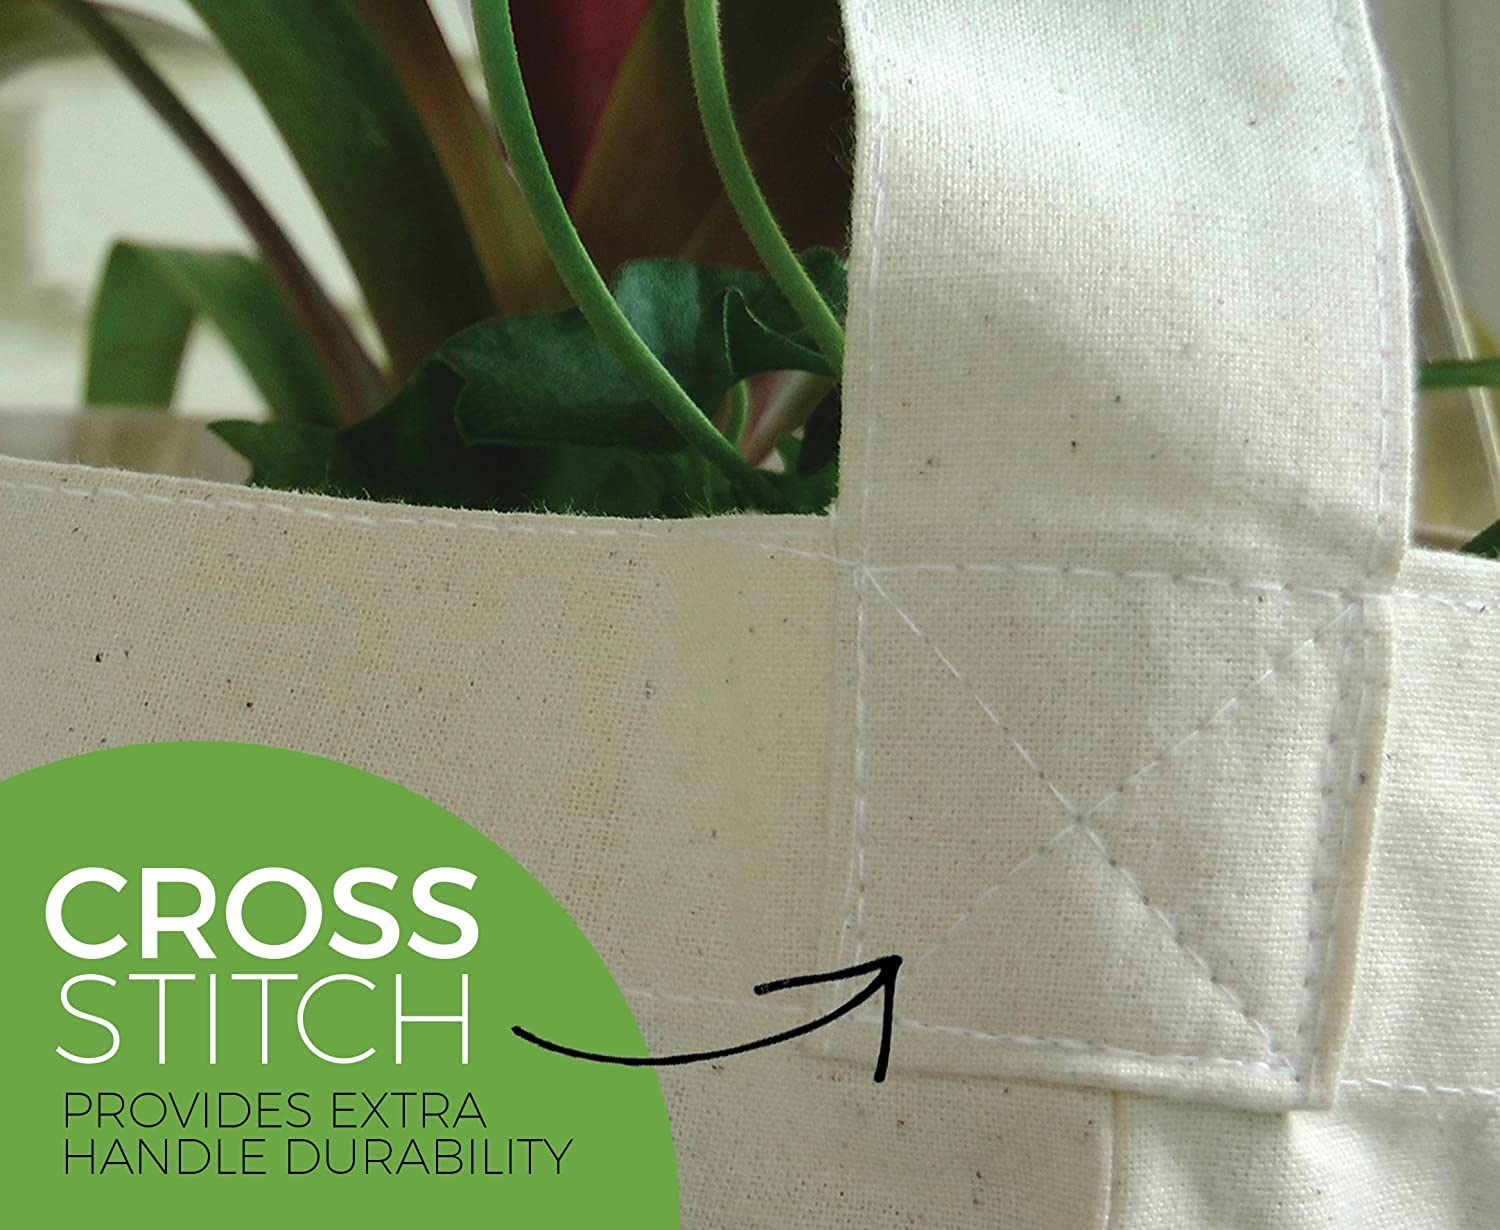 15.5 x 14.5 Off White 3 Pack Green Earth Bags Reusable Cotton Canvas Grocery Tote Bag with Cross Body Strap